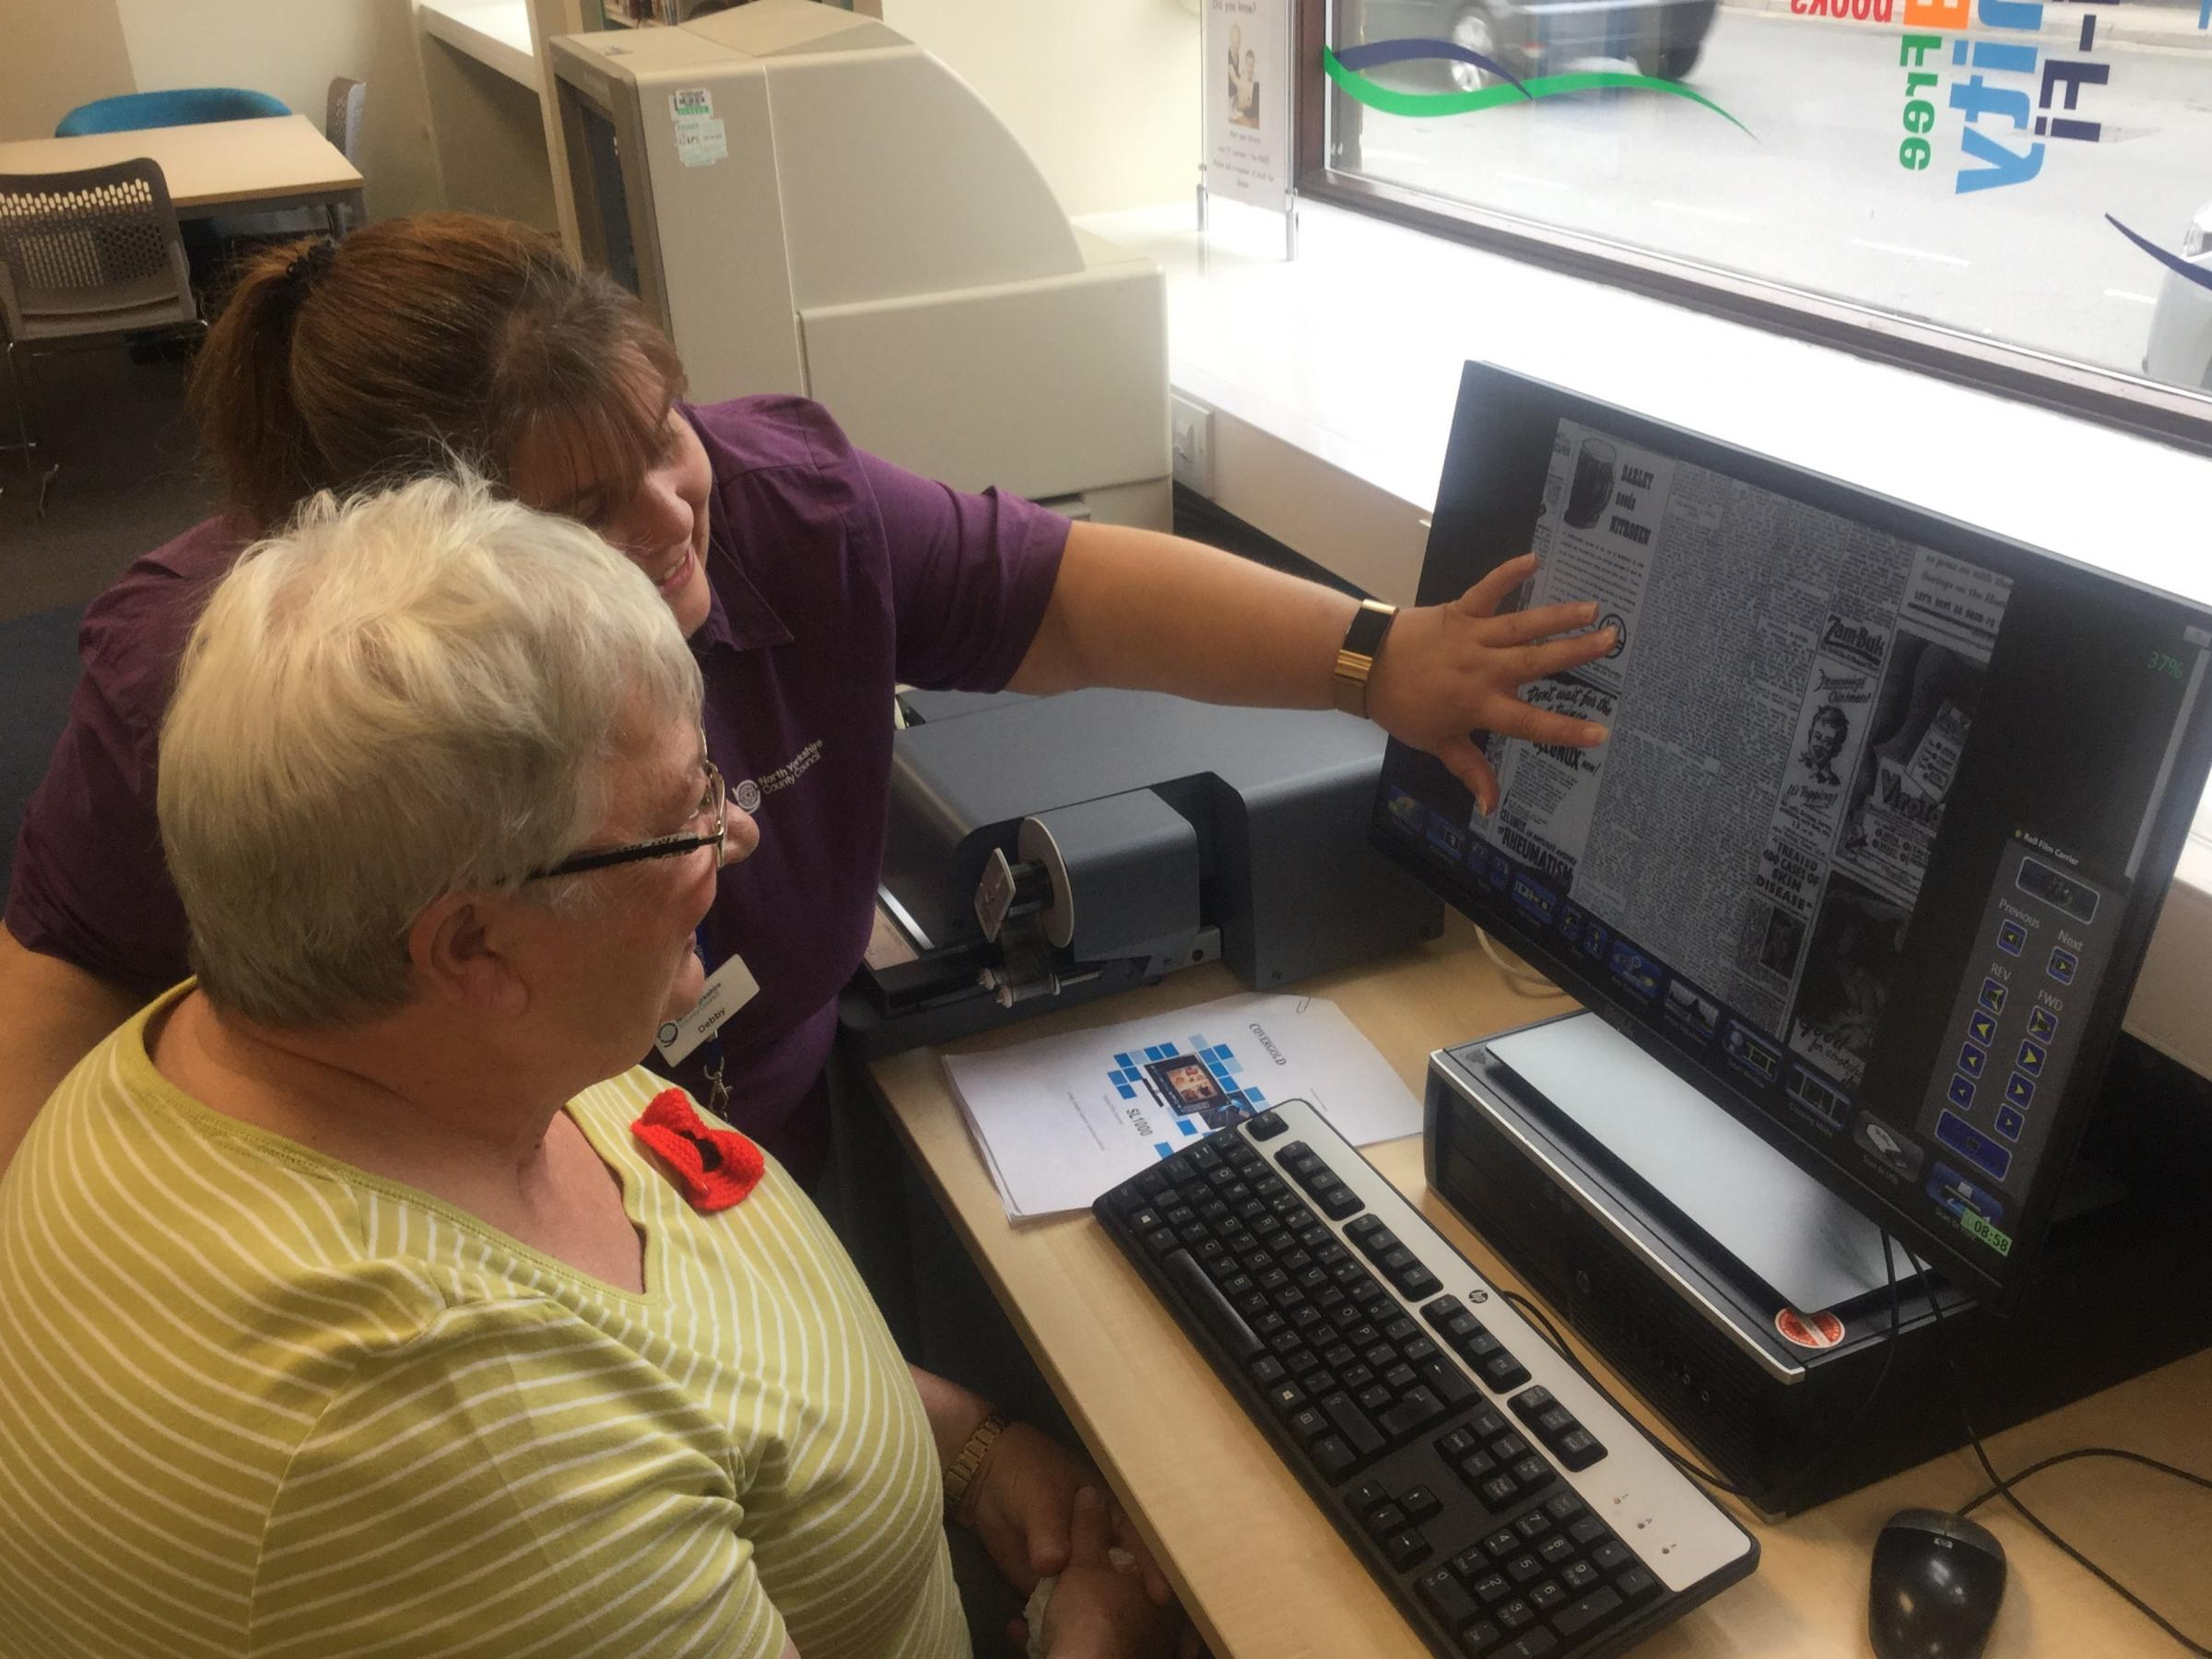 Library staff member Debby Foulkes demonstrates one of the new scanners to a customer.